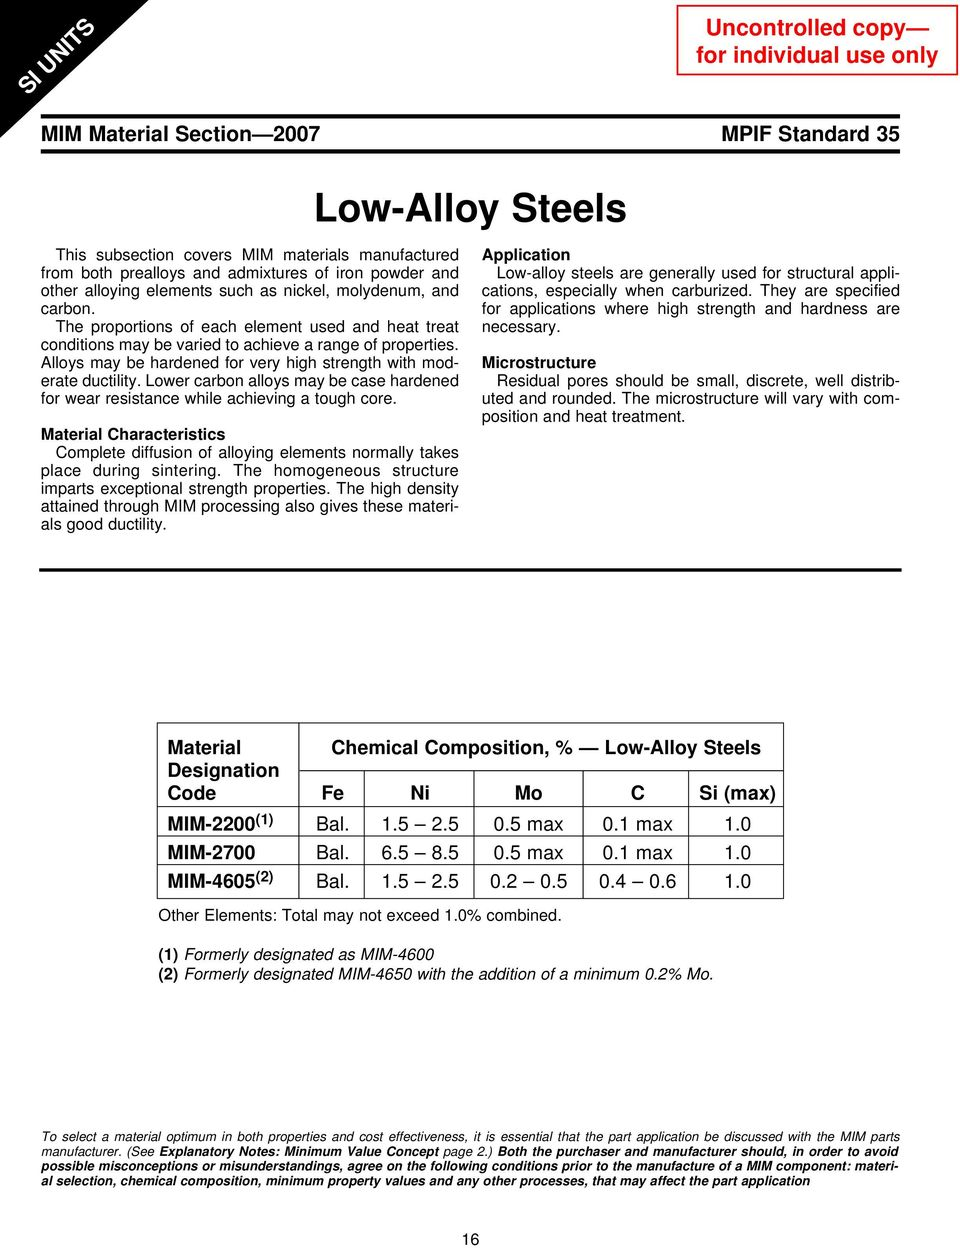 Alloys may be hardened for very high strength with moderate ductility. Lower carbon alloys may be case hardened for wear resistance while achieving a tough core.